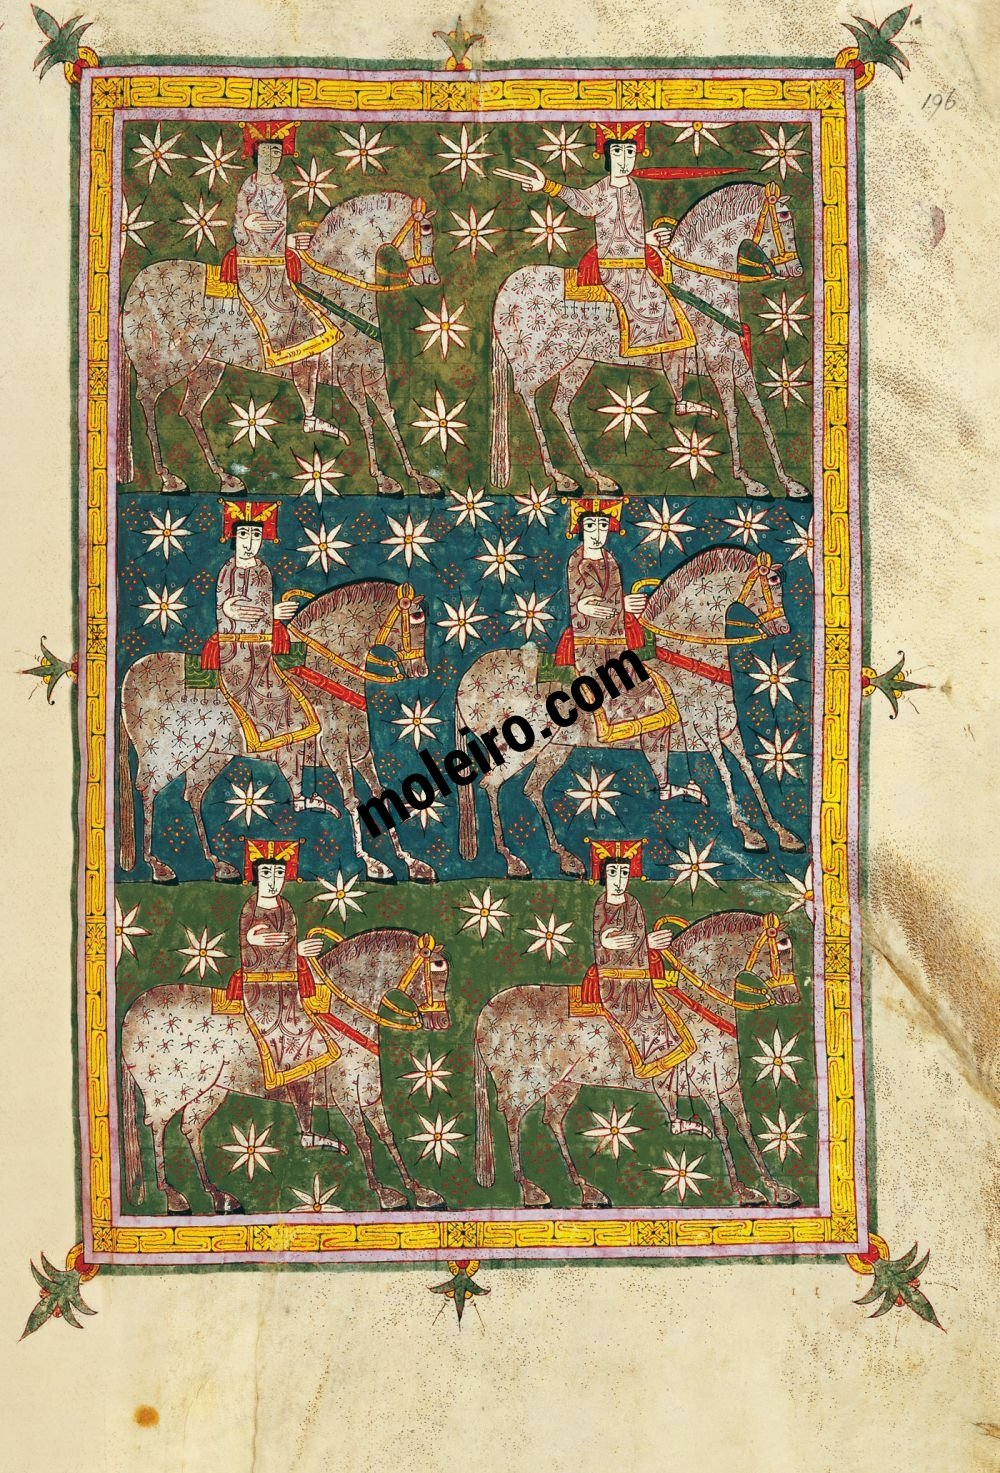 Silos Beatus f. 196r, The Raider Faithfull and True upon the white horse